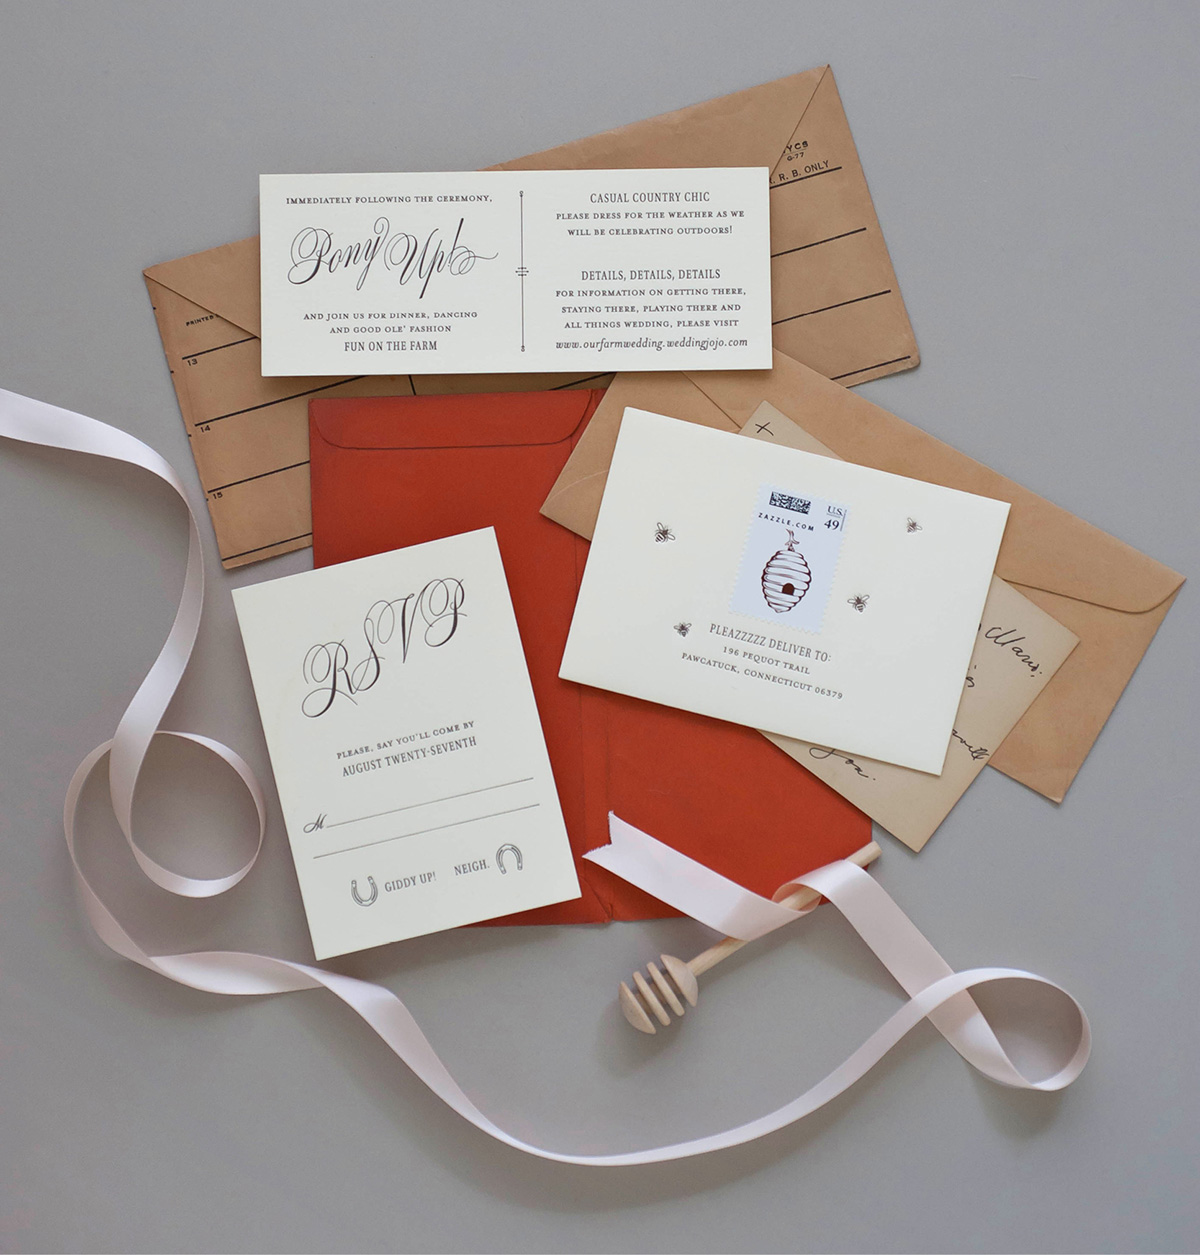 Classic letterpress invitations for a horse farm wedding